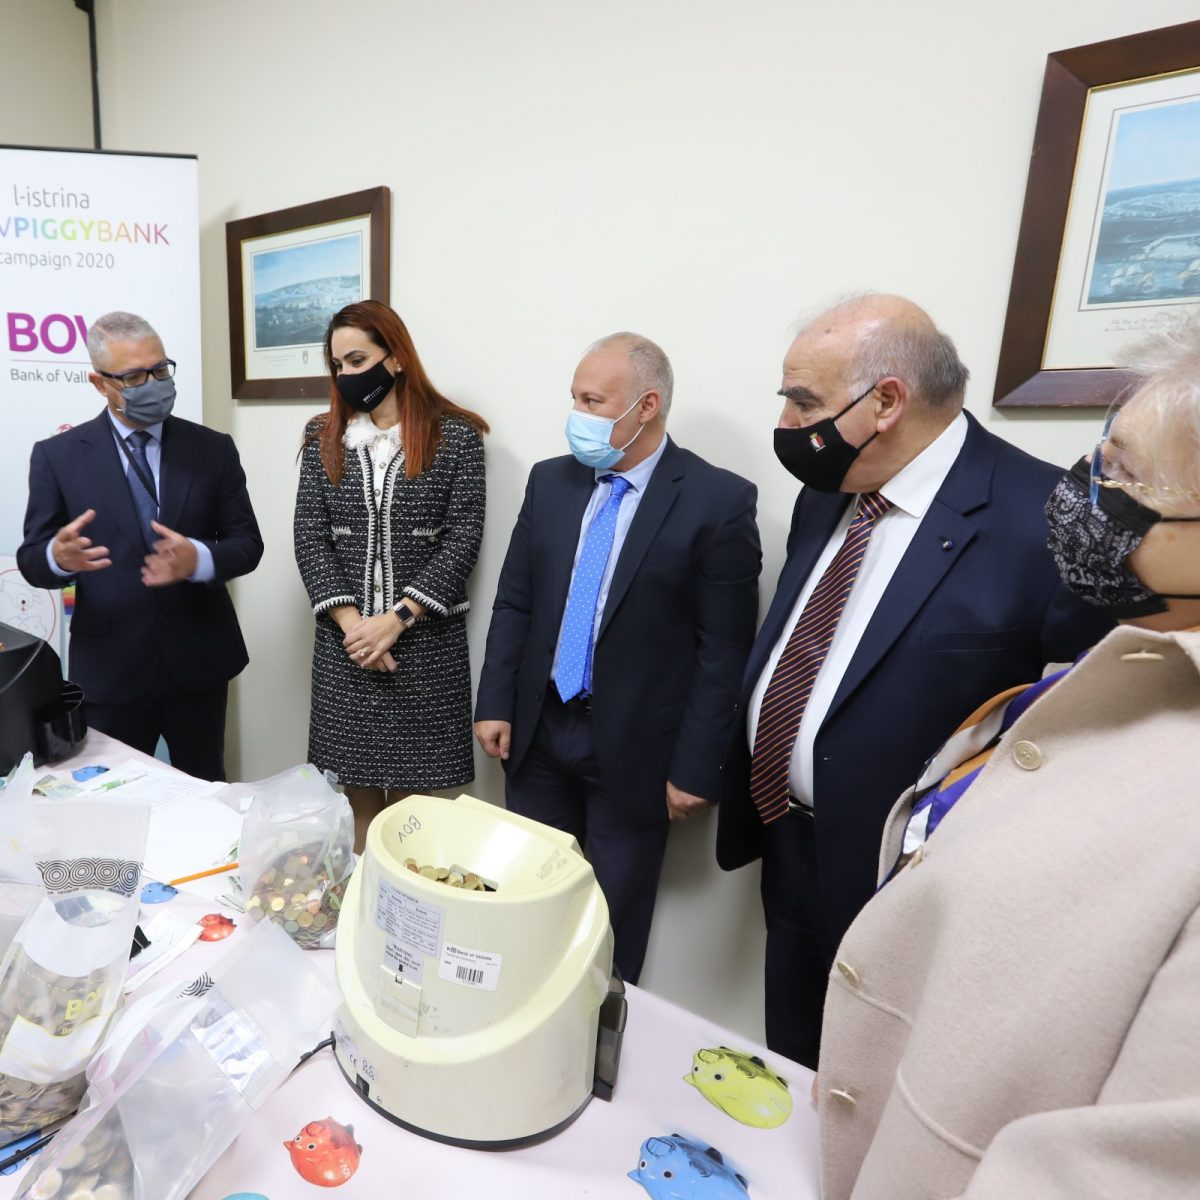 President and Mrs Vella visit Piggy Bank Campaign Coin Counting